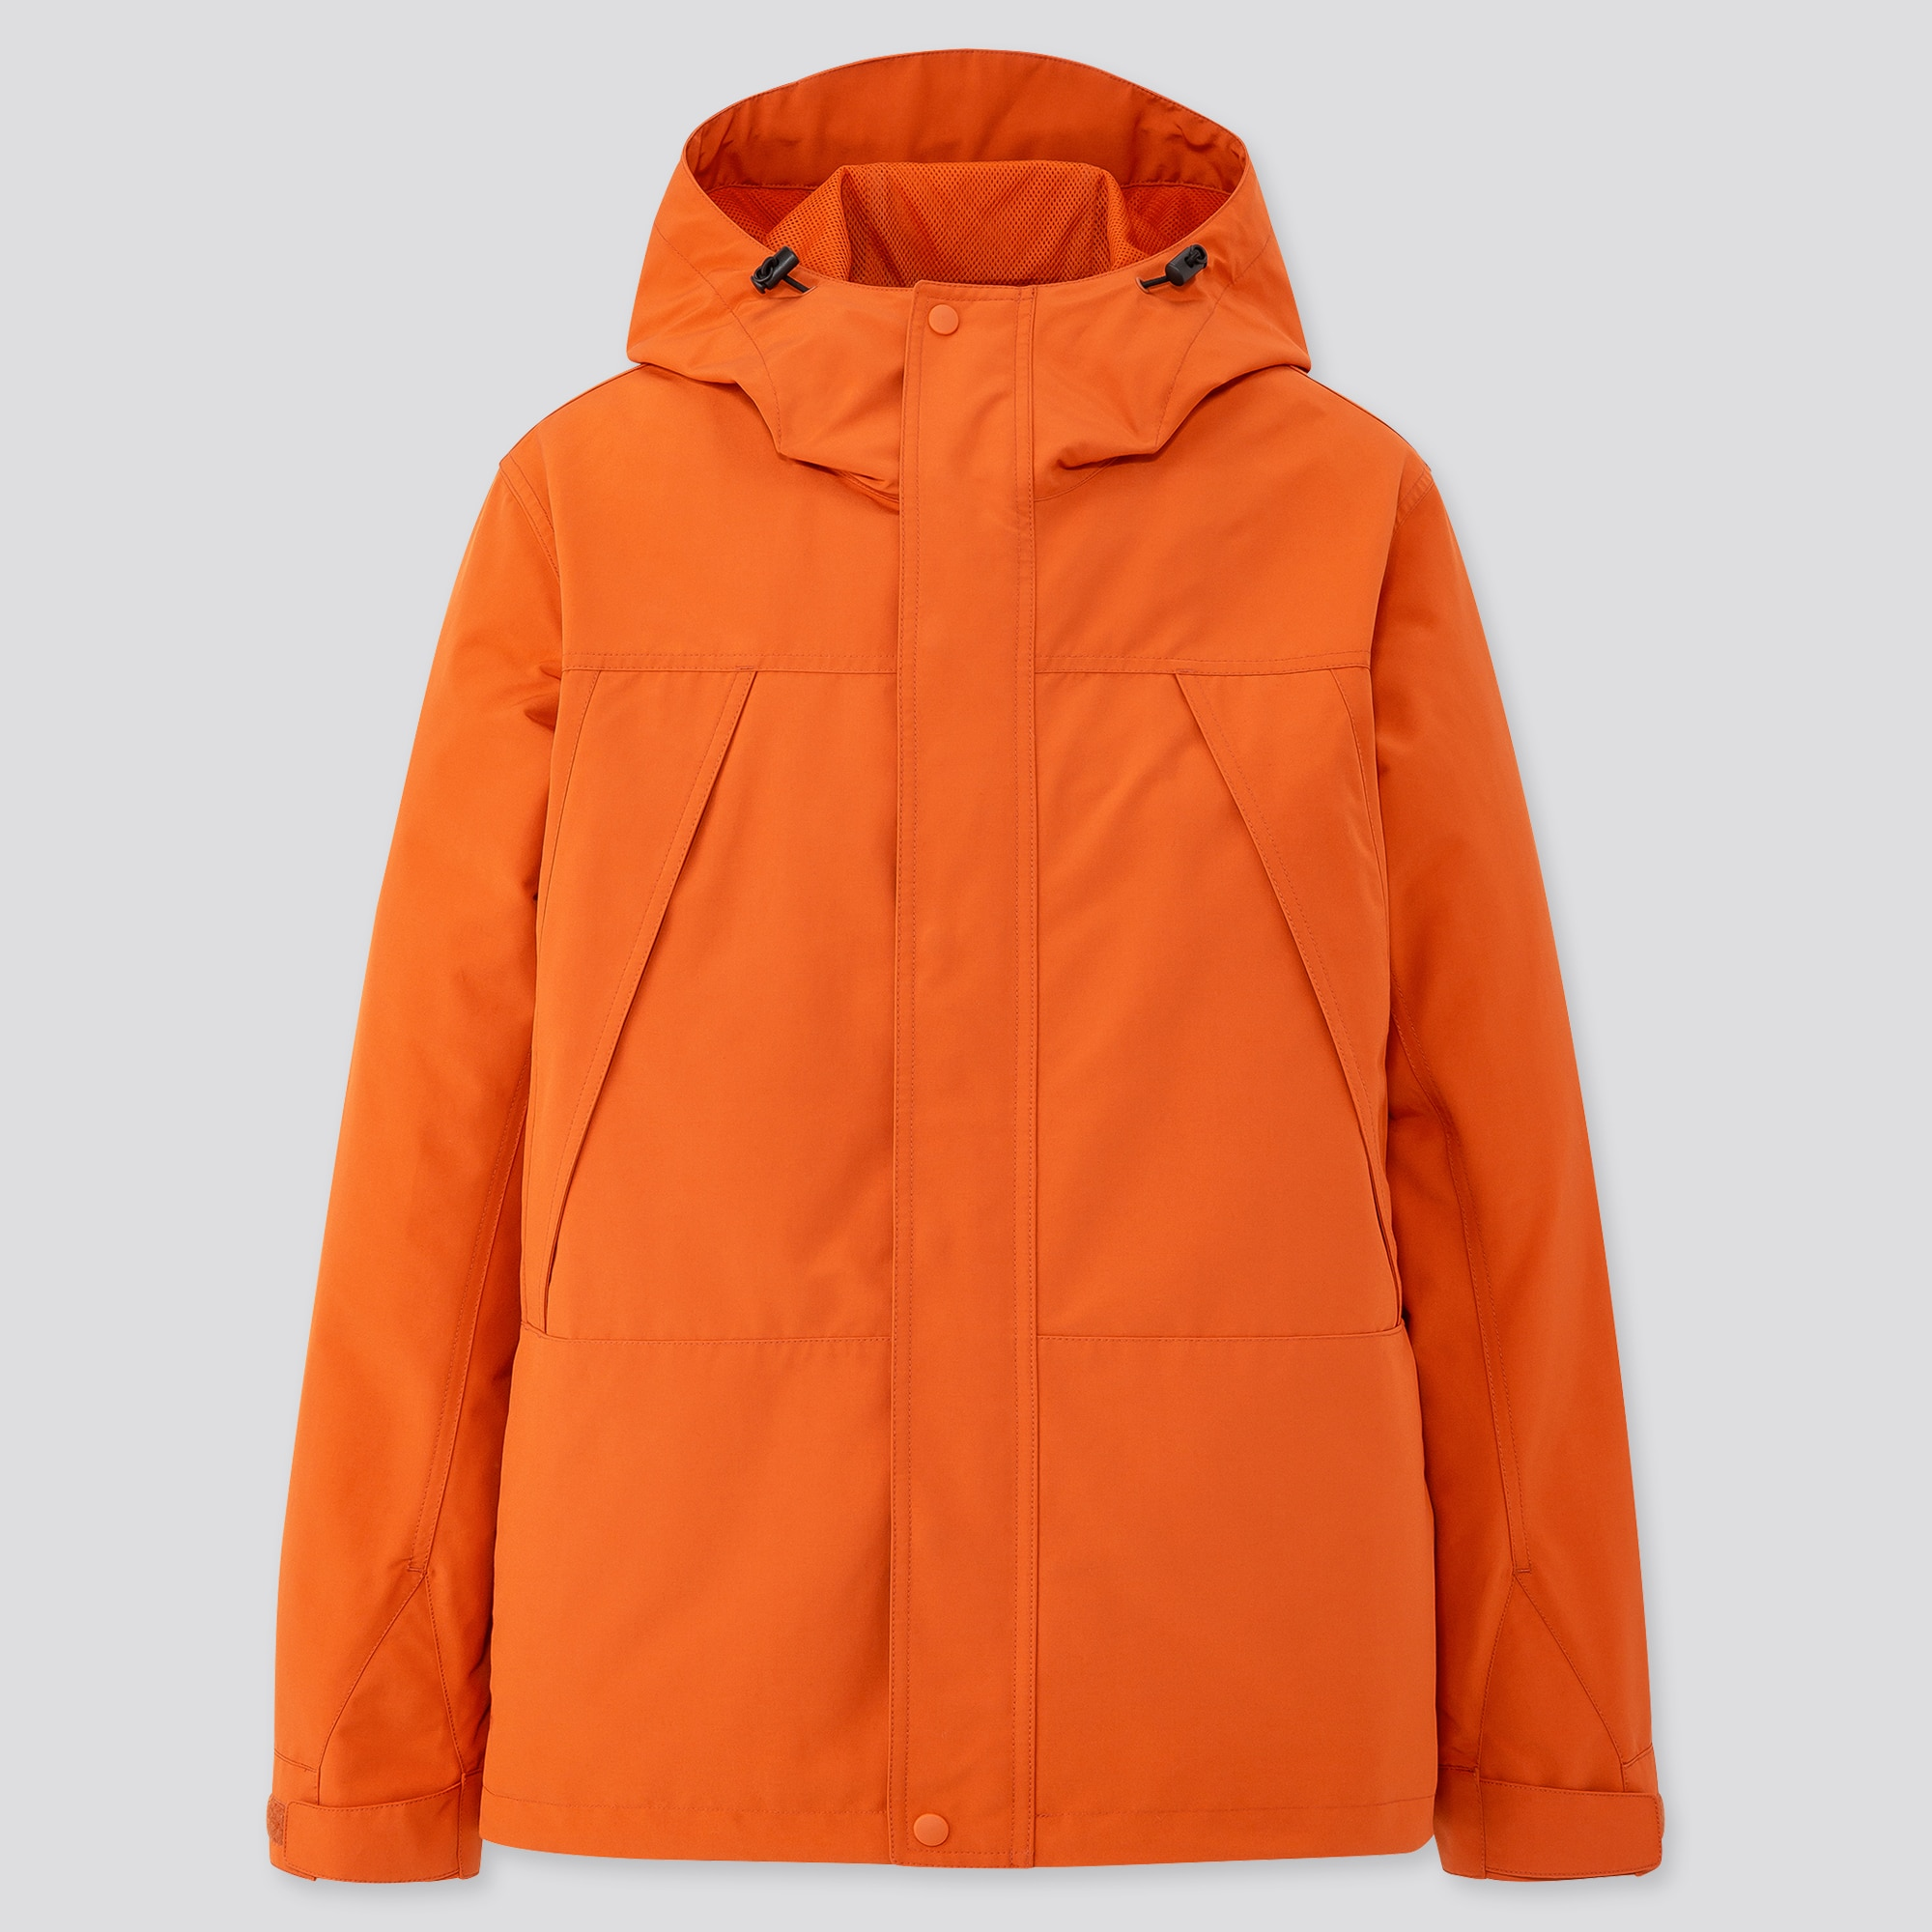 Uniqlo men mountain parka